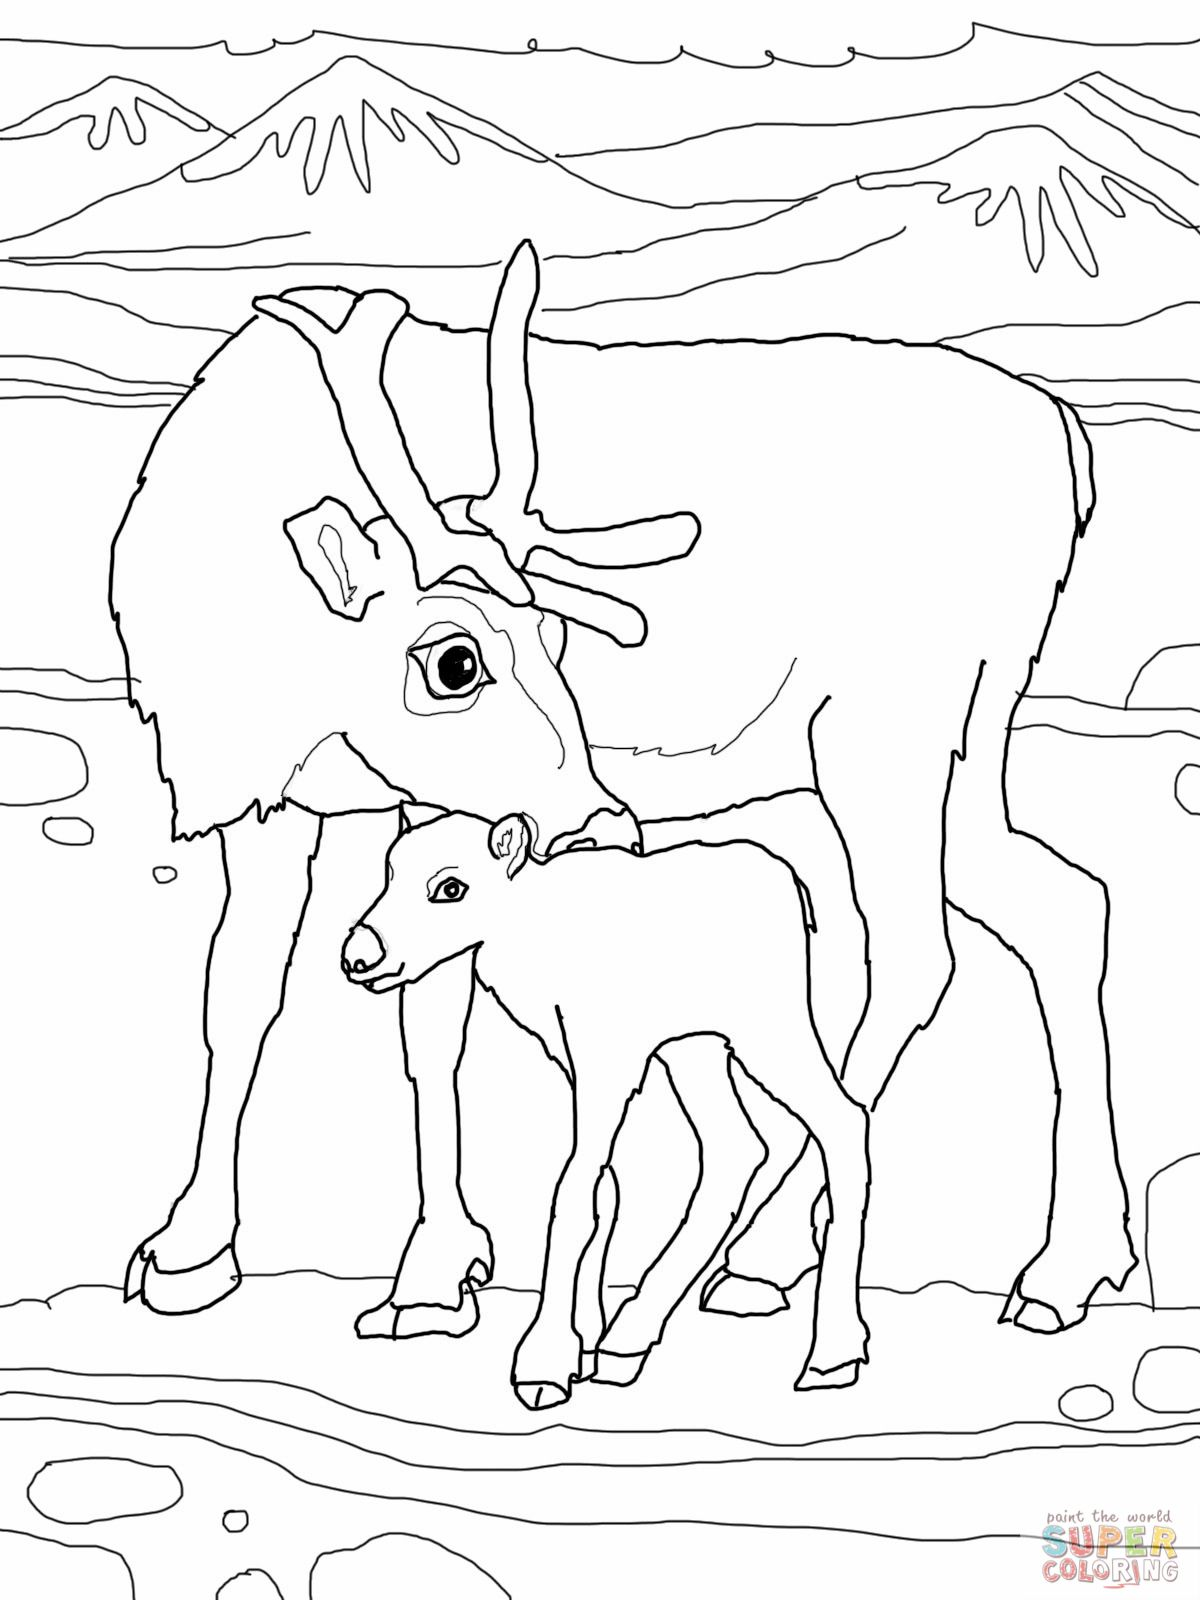 Mother Reindeer with baby deer ( Coloring picture ) Wood